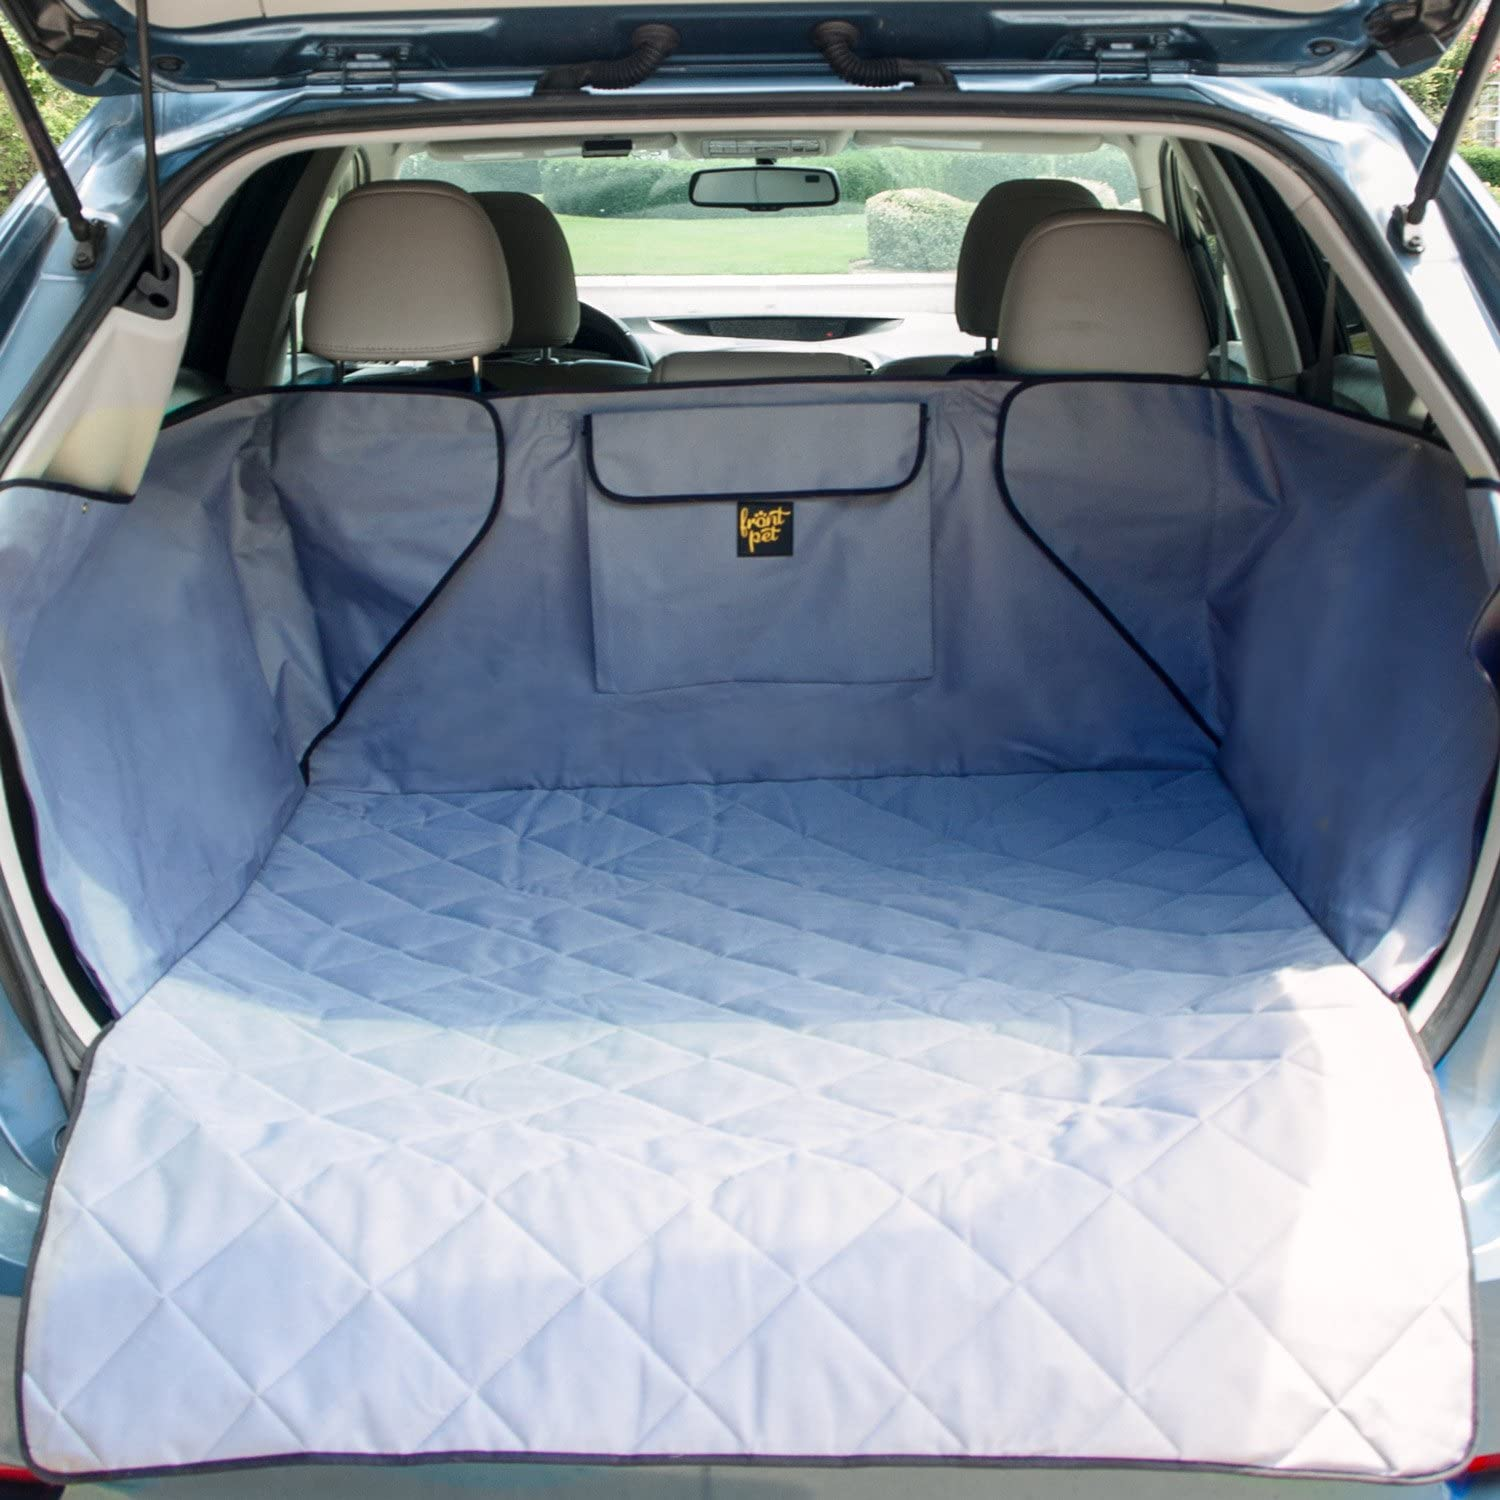 FrontPet Quilted Dog Cargo Cover for SUV, Universal Fit for Any Pet Animal. Durable Liner Covers and Predects Your Vehicle, Regular, Large and Extra Large